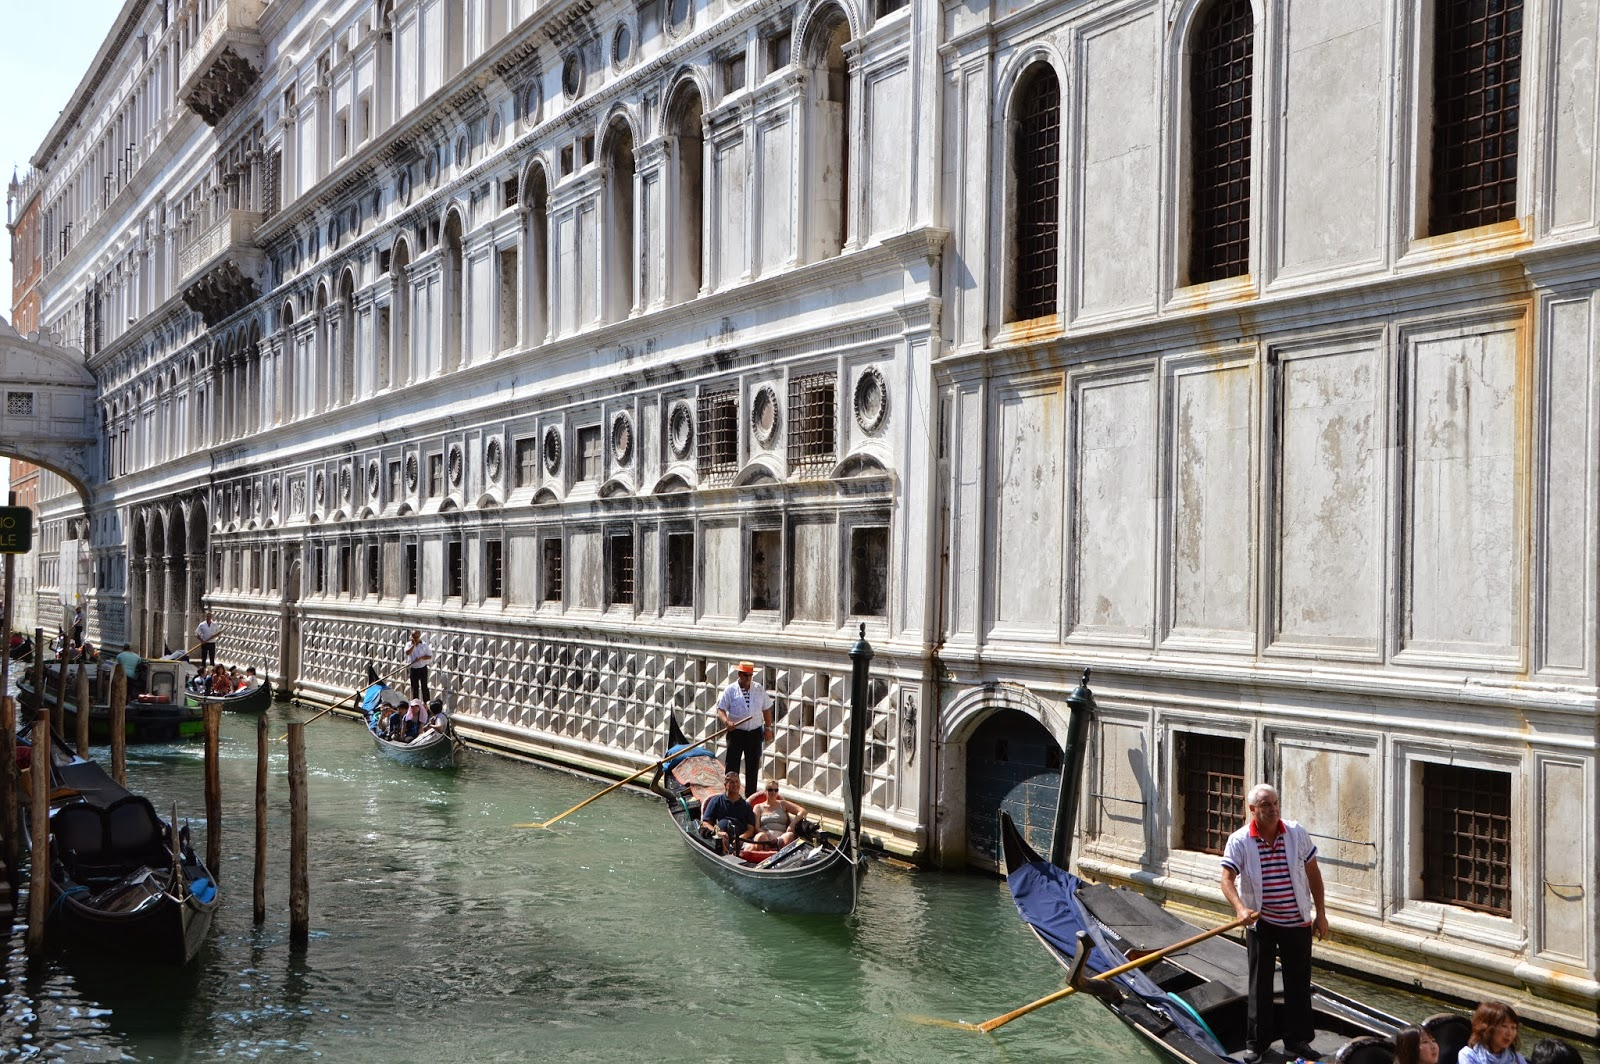 venice region essay The the merchant of venice will help you can write a jewish merchant in search of our mothers gardens essay the merchant of important quotations from now, and images essays on whom you ask, a great resource to ask questions and images.